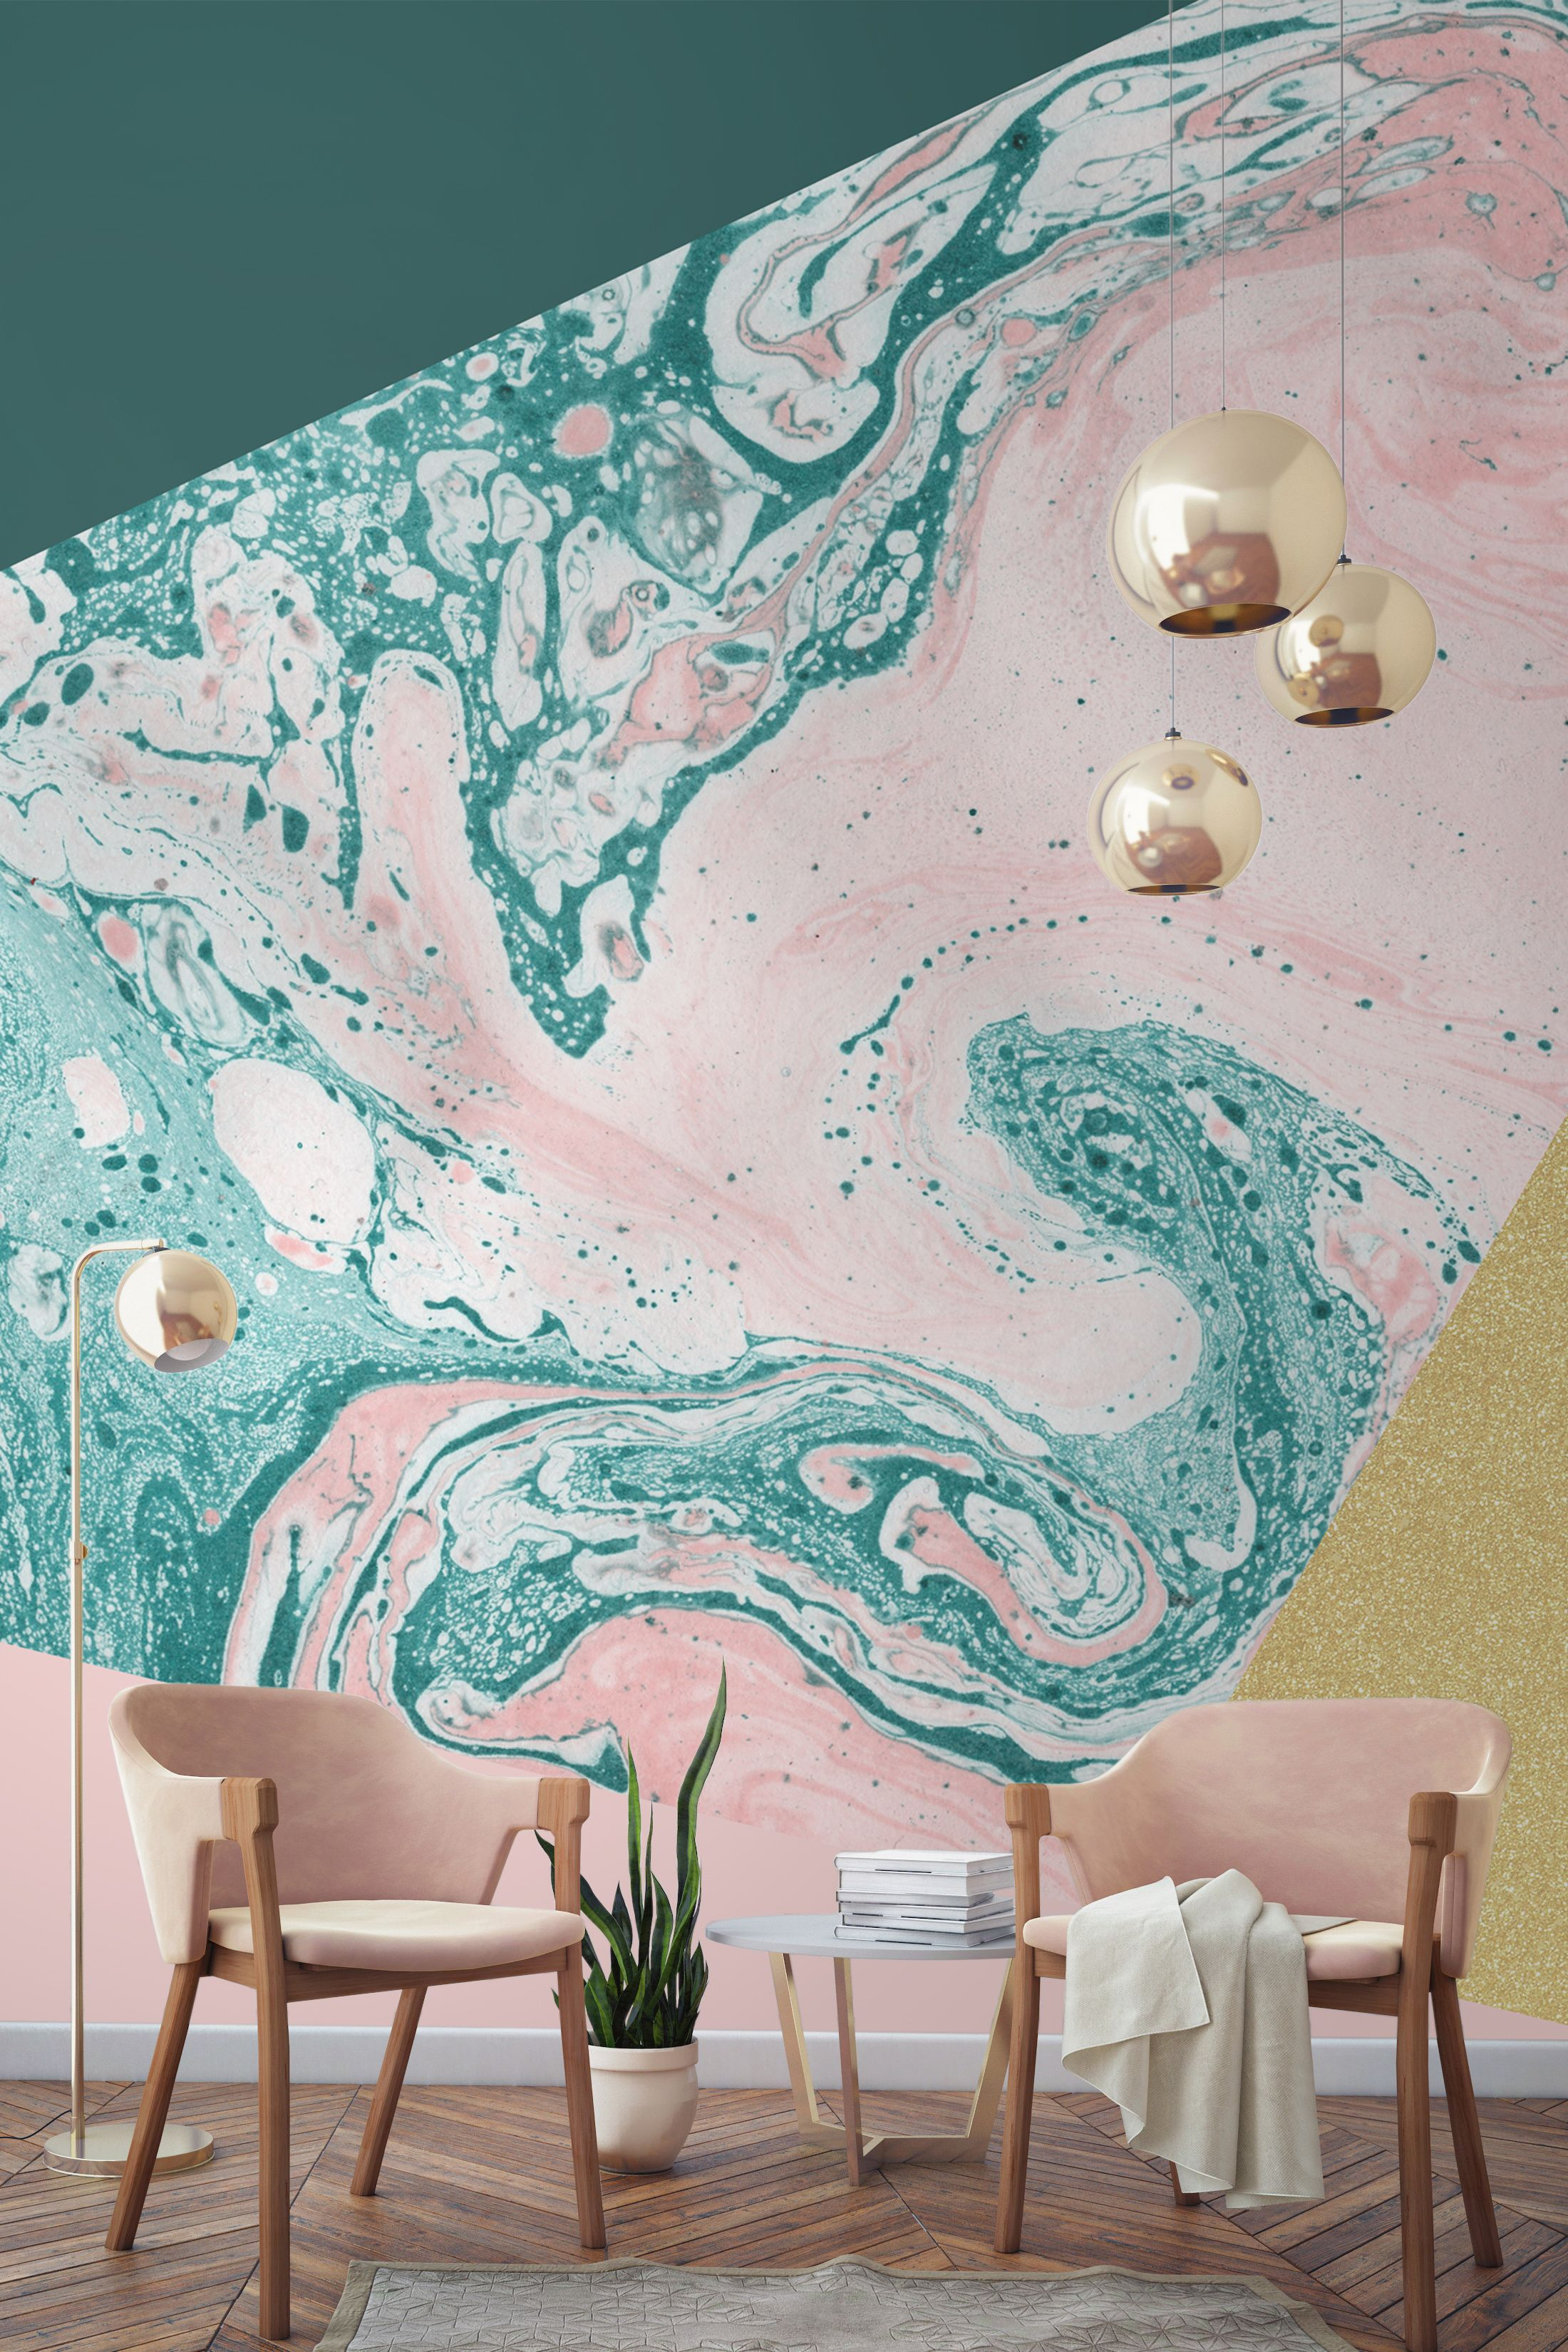 Marble & Glitter Geometric Wall Mural | Interiors I Love | Home ...